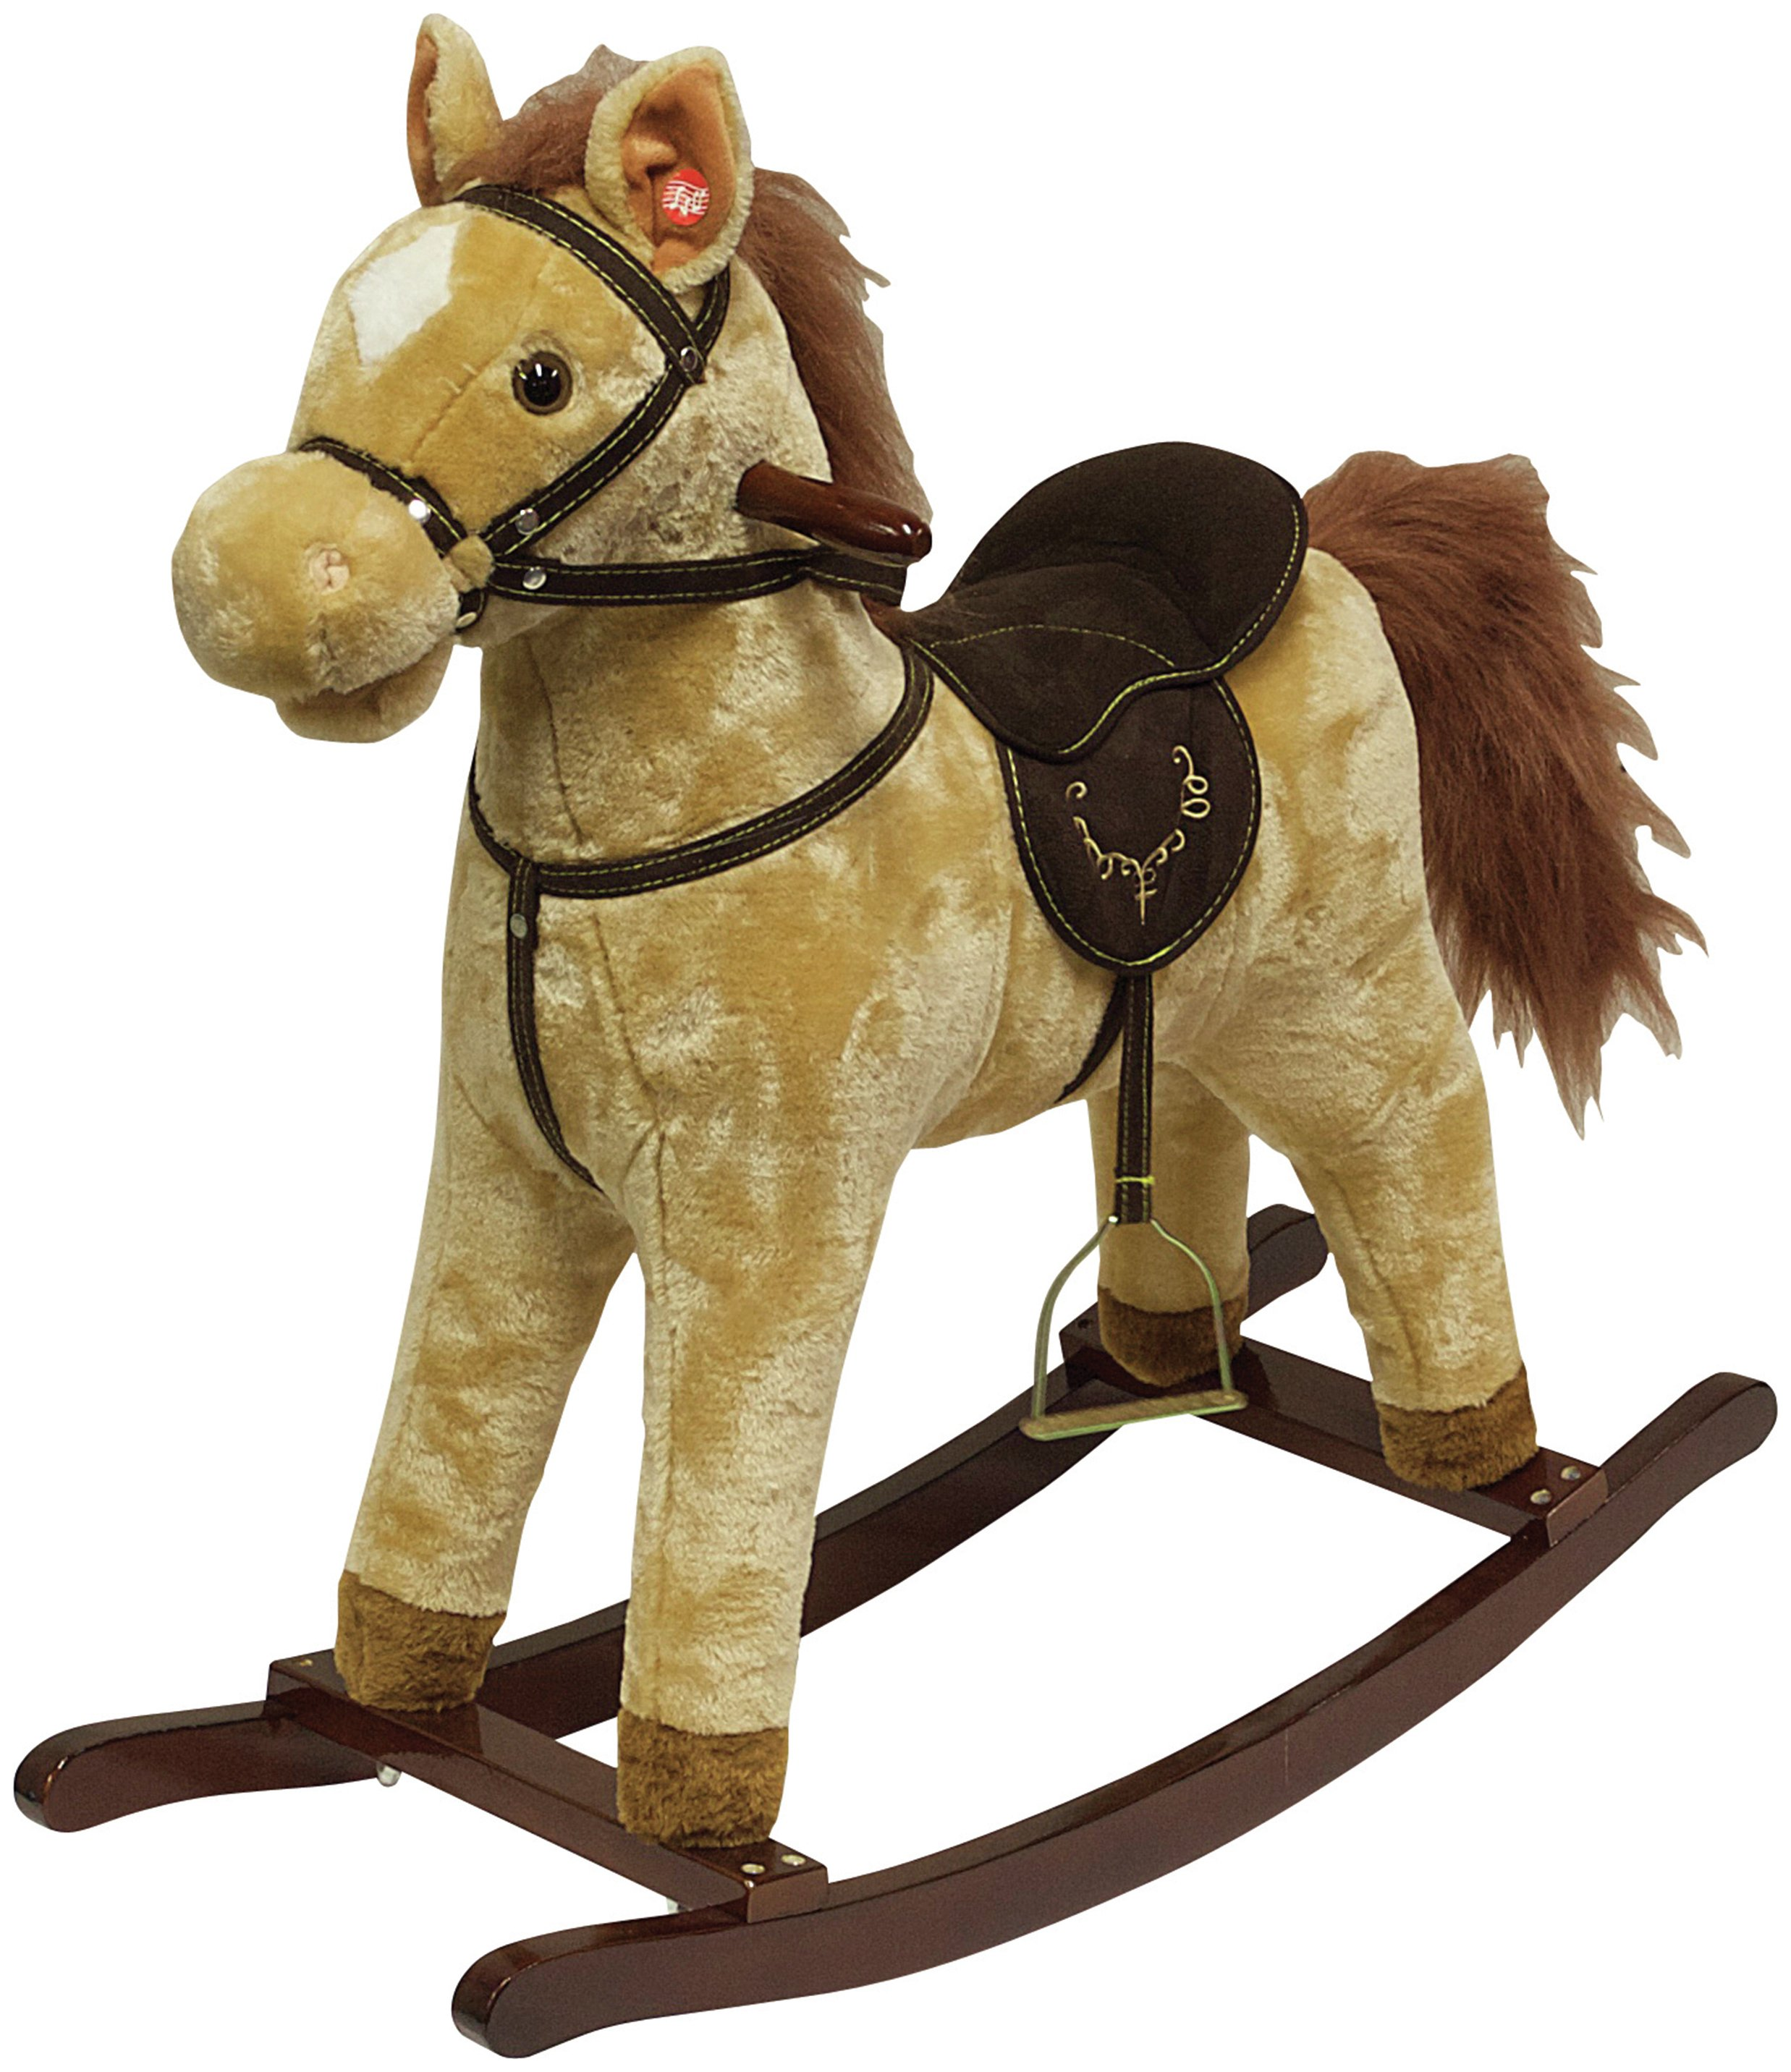 Image of Rocking Horse.